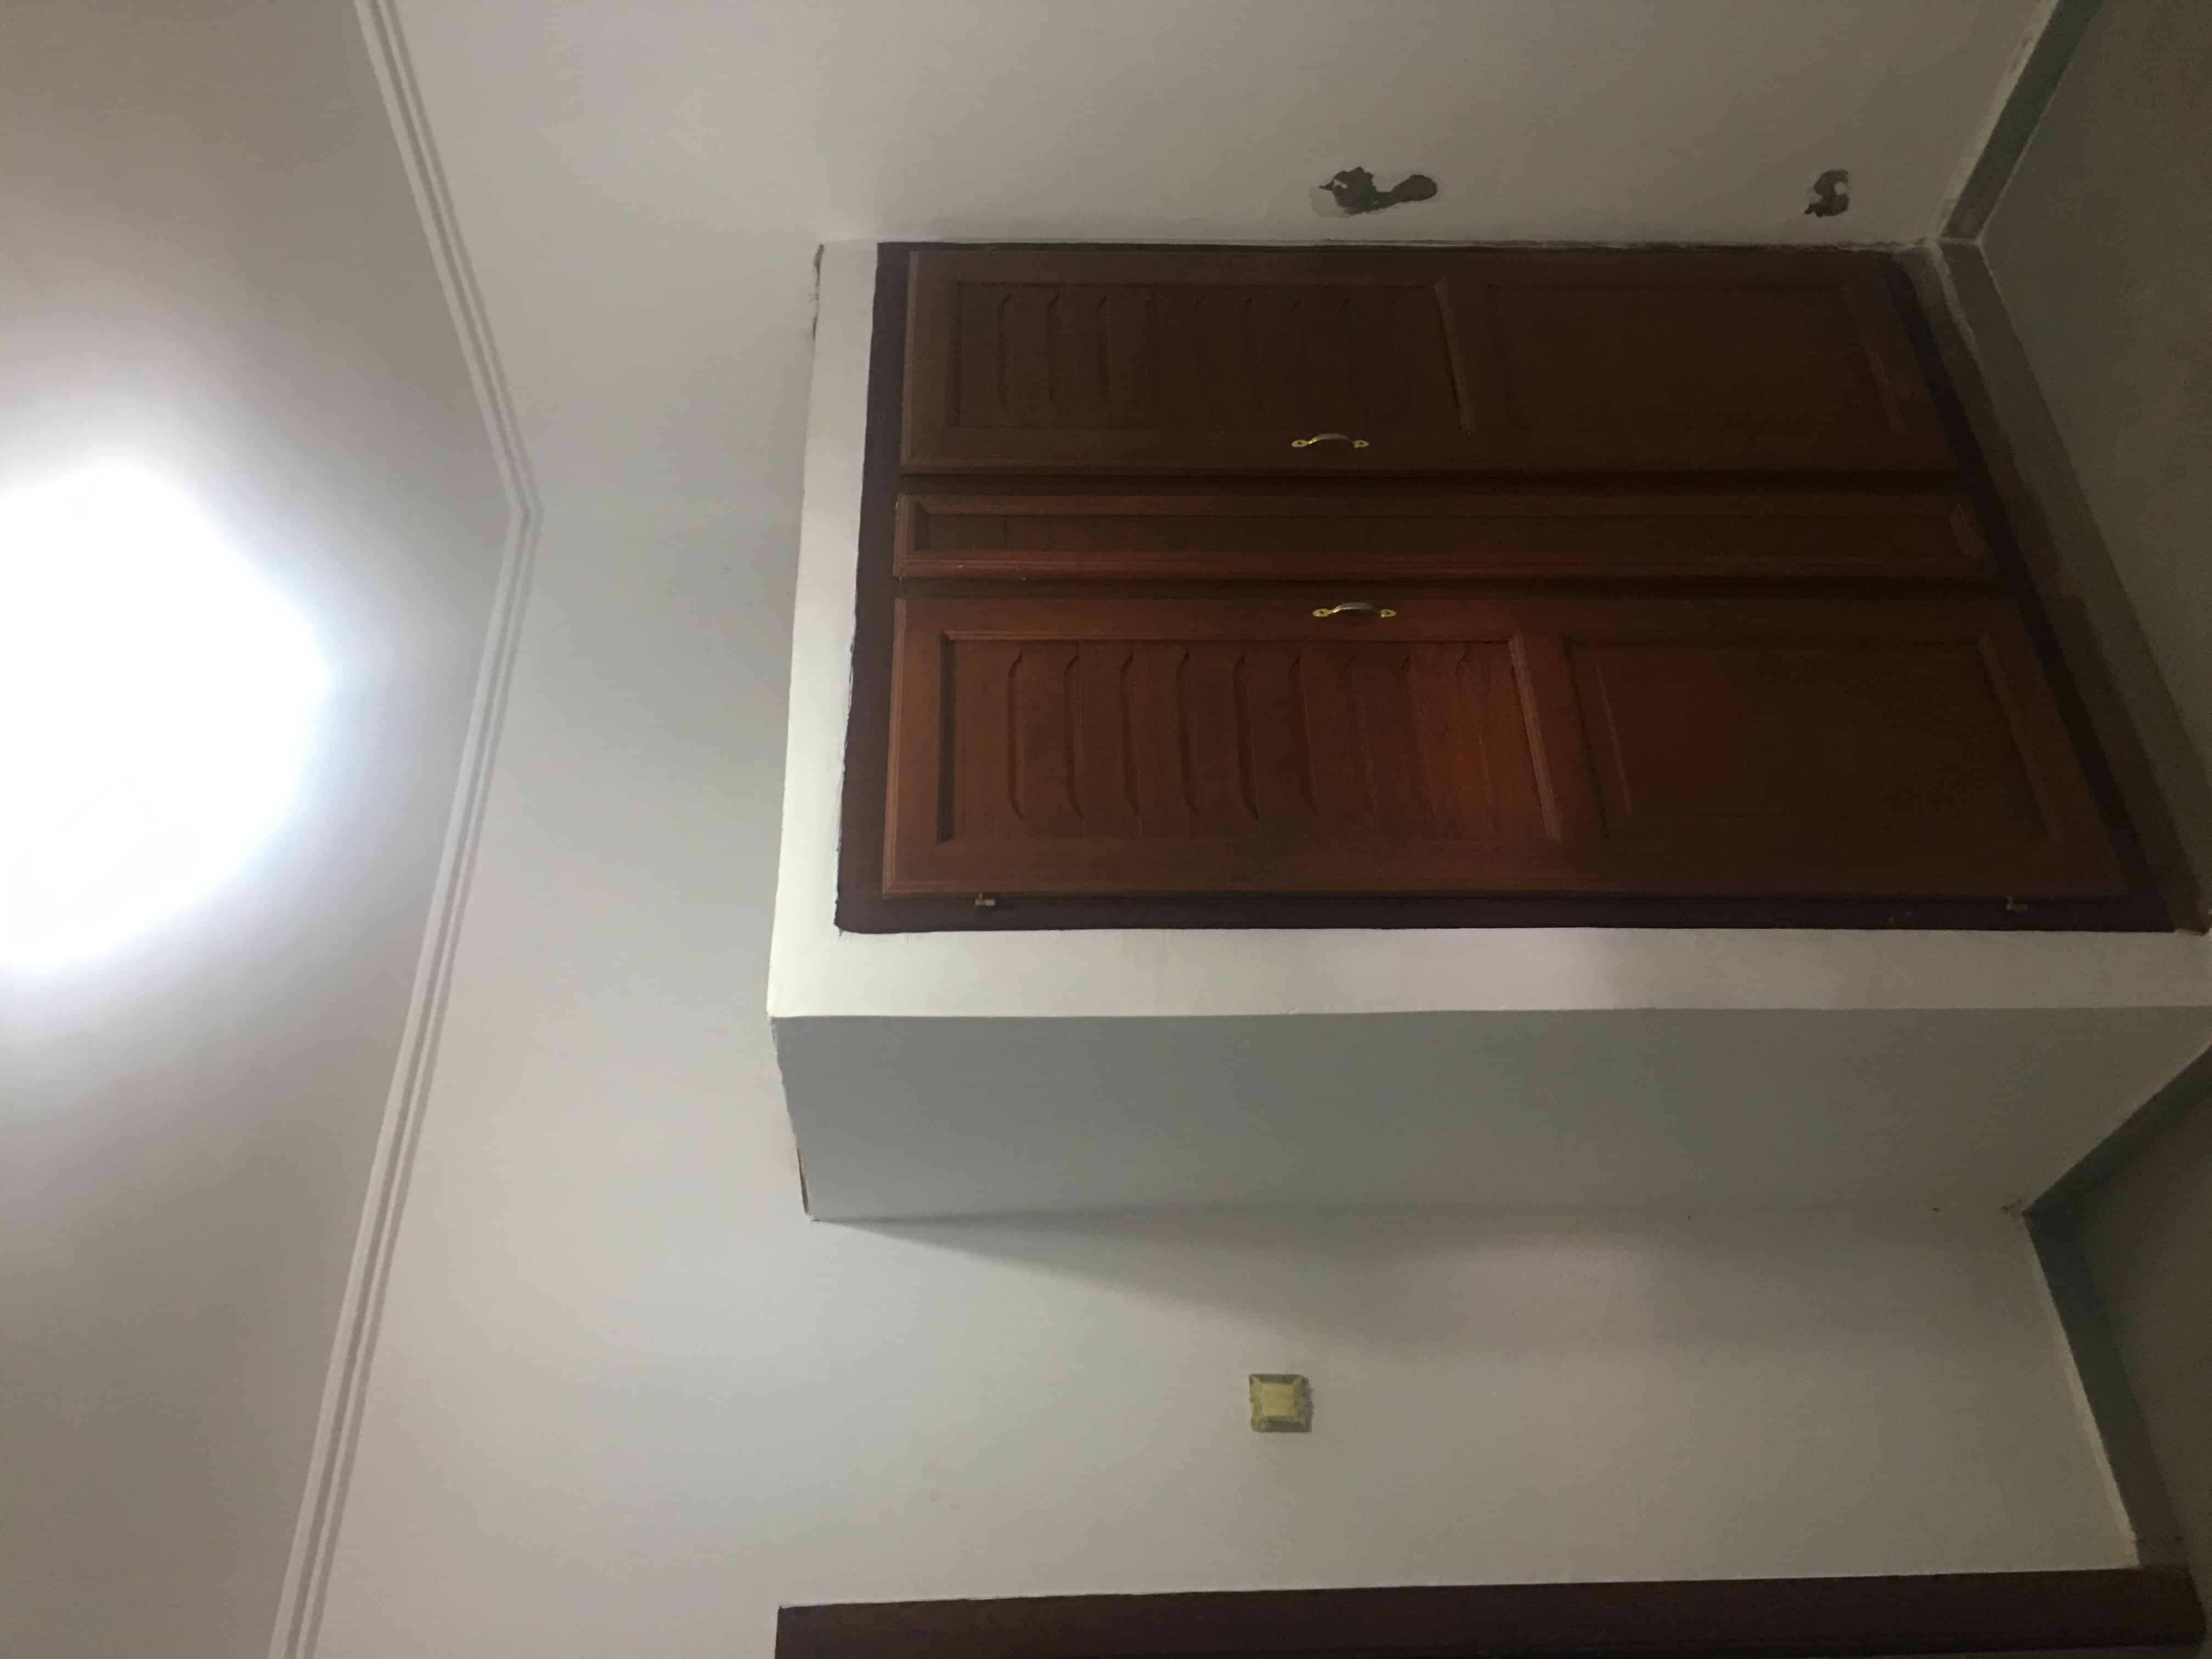 Apartment to rent - Yaoundé, Mfandena, Titi garage - 1 living room(s), 2 bedroom(s), 1 bathroom(s) - 200 000 FCFA / month